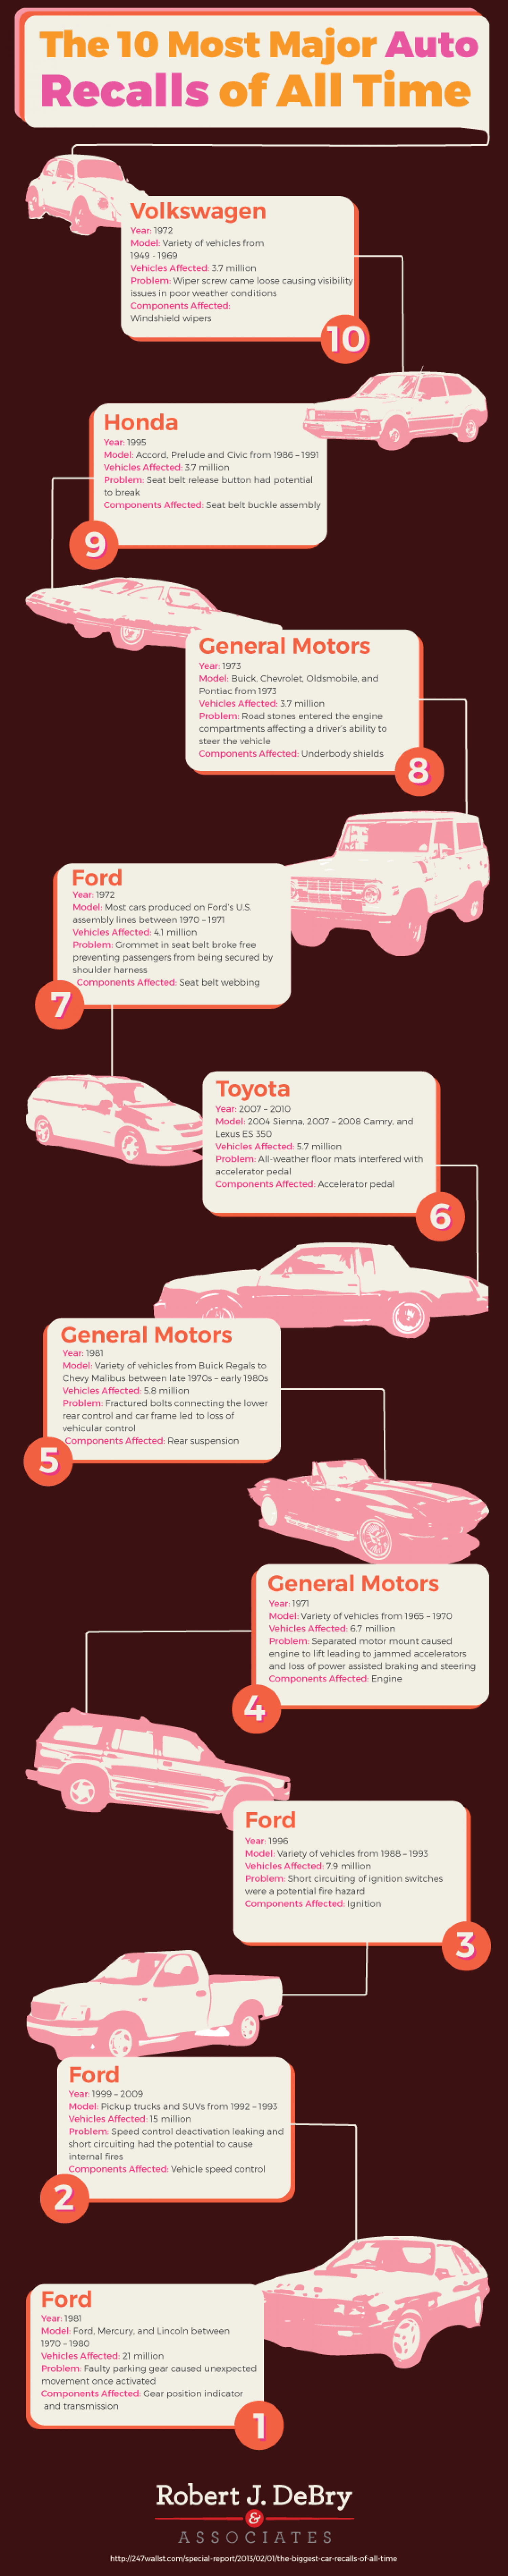 The 10 Most Major Auto Recalls of All Time Infographic